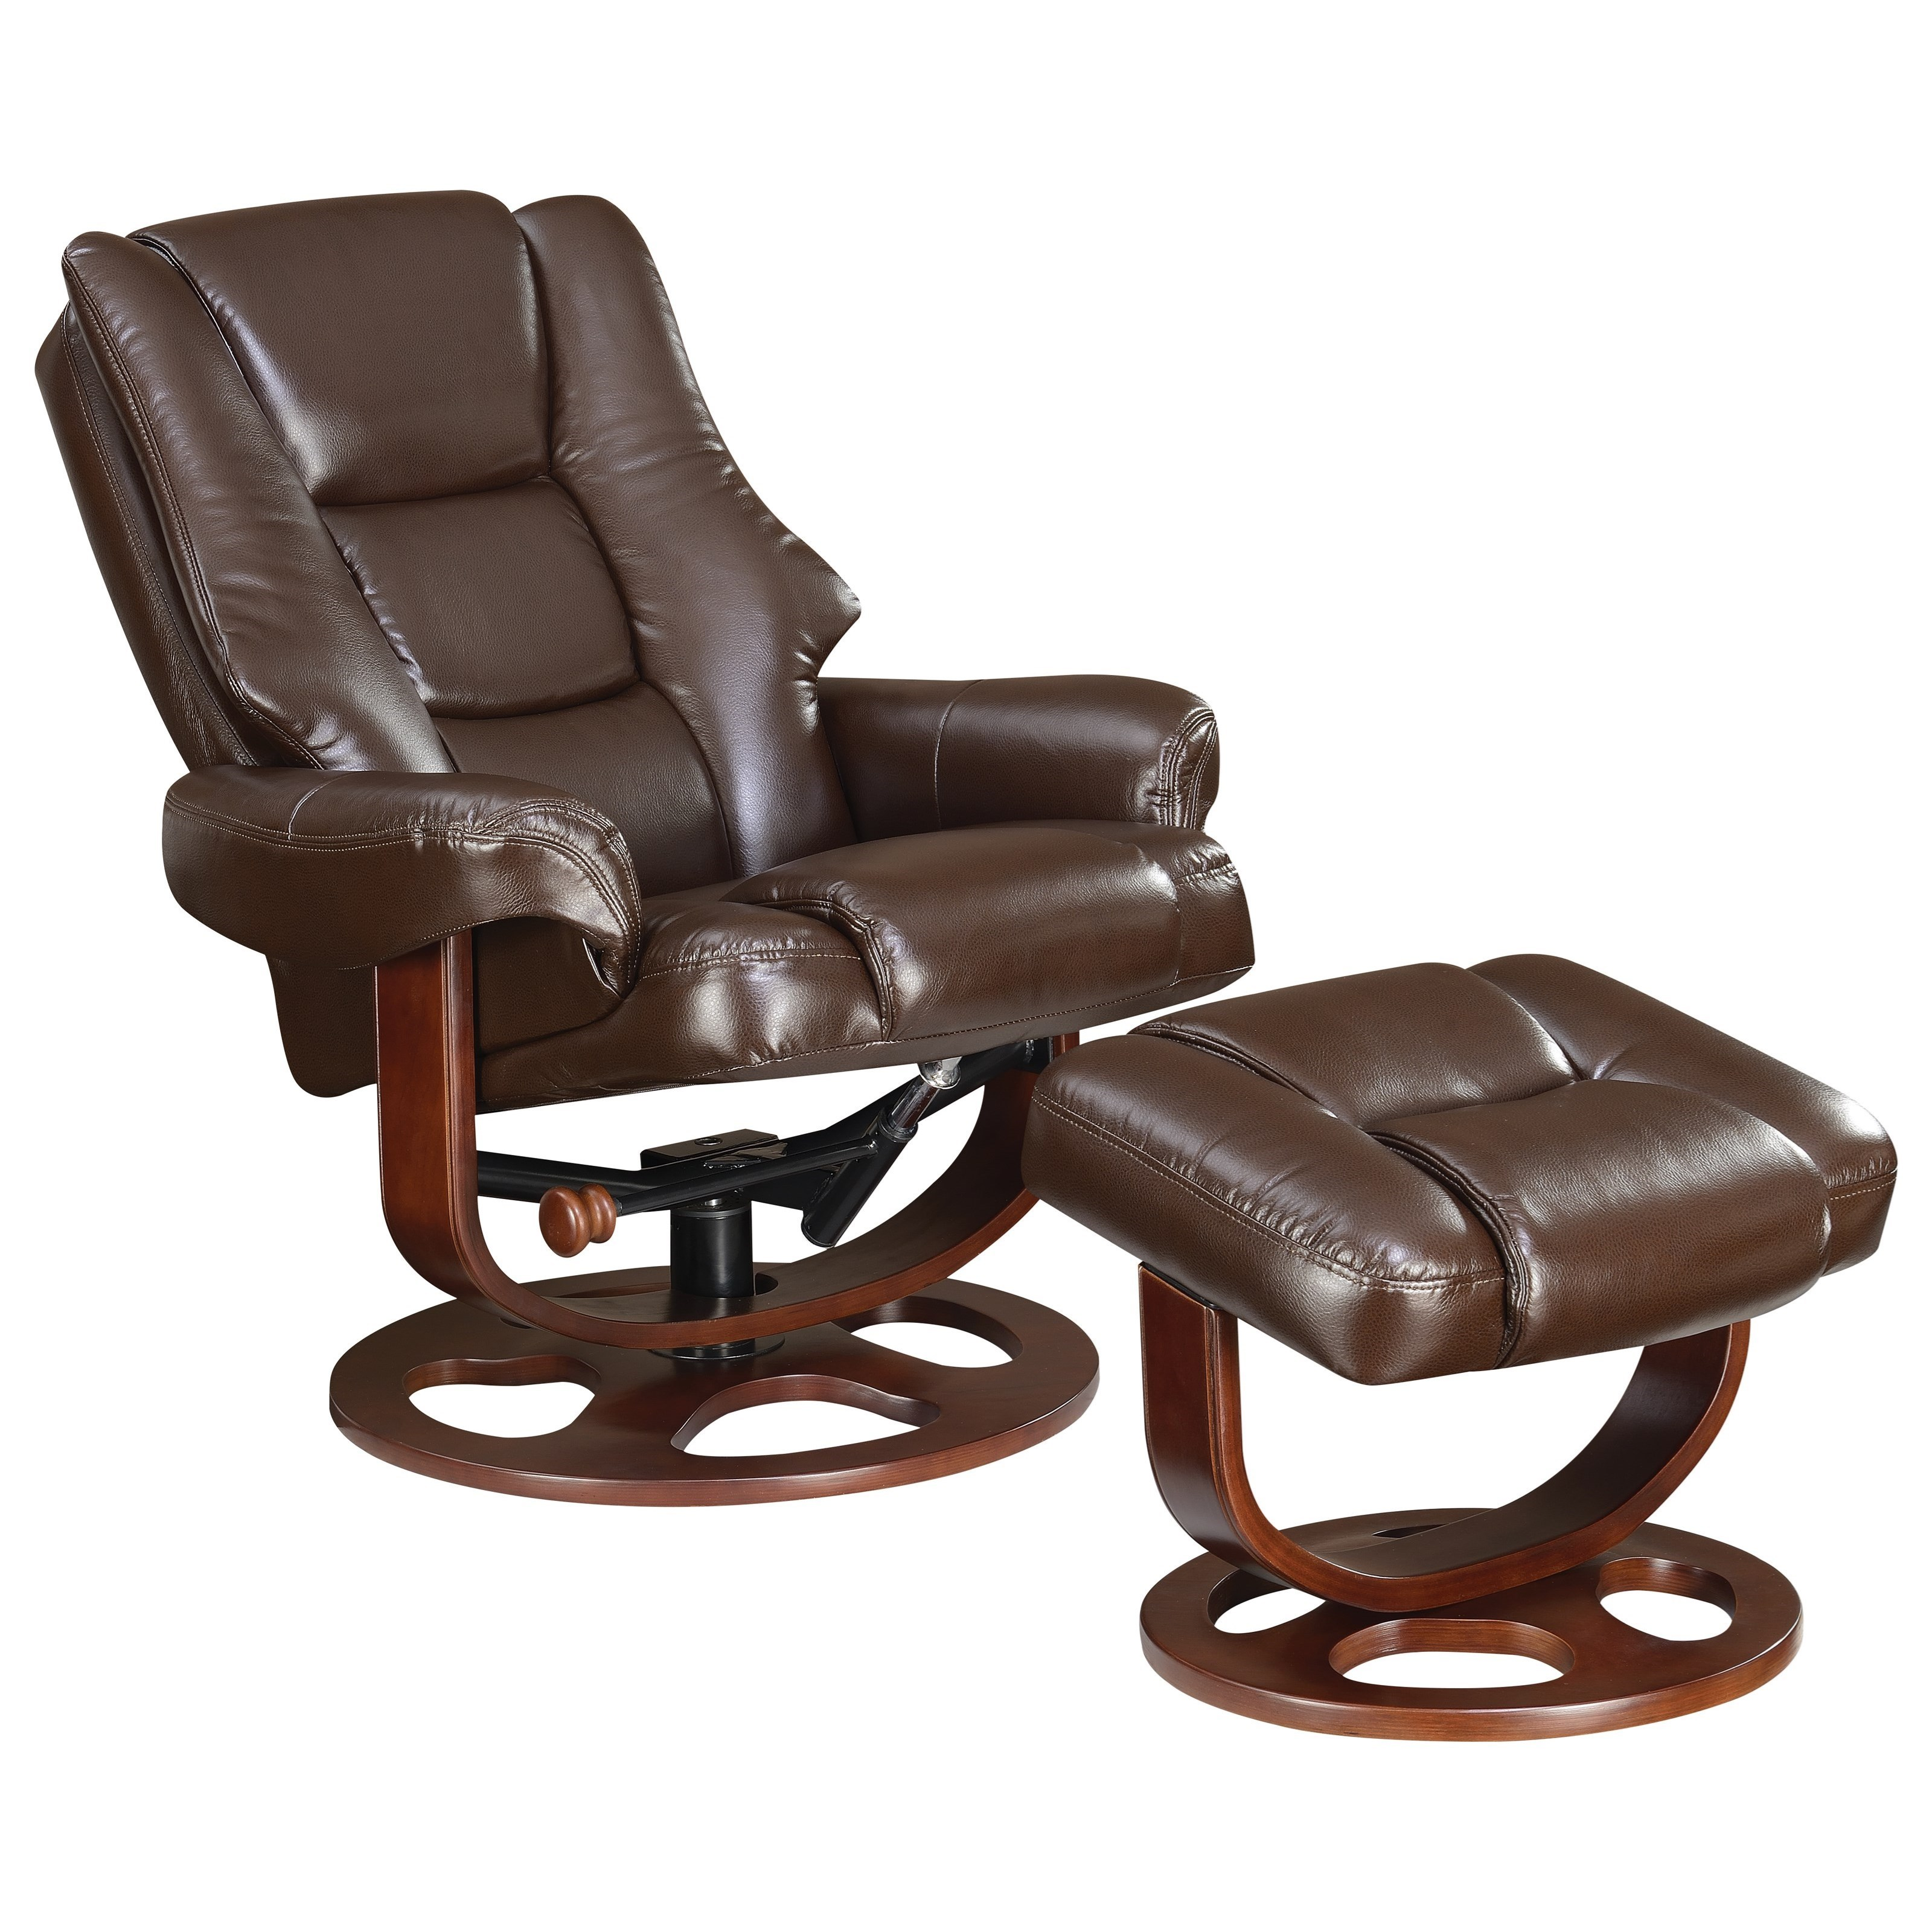 Reclining Chair And Ottoman Coaster Recliners With Ottomans 600086 Plush Recliner And